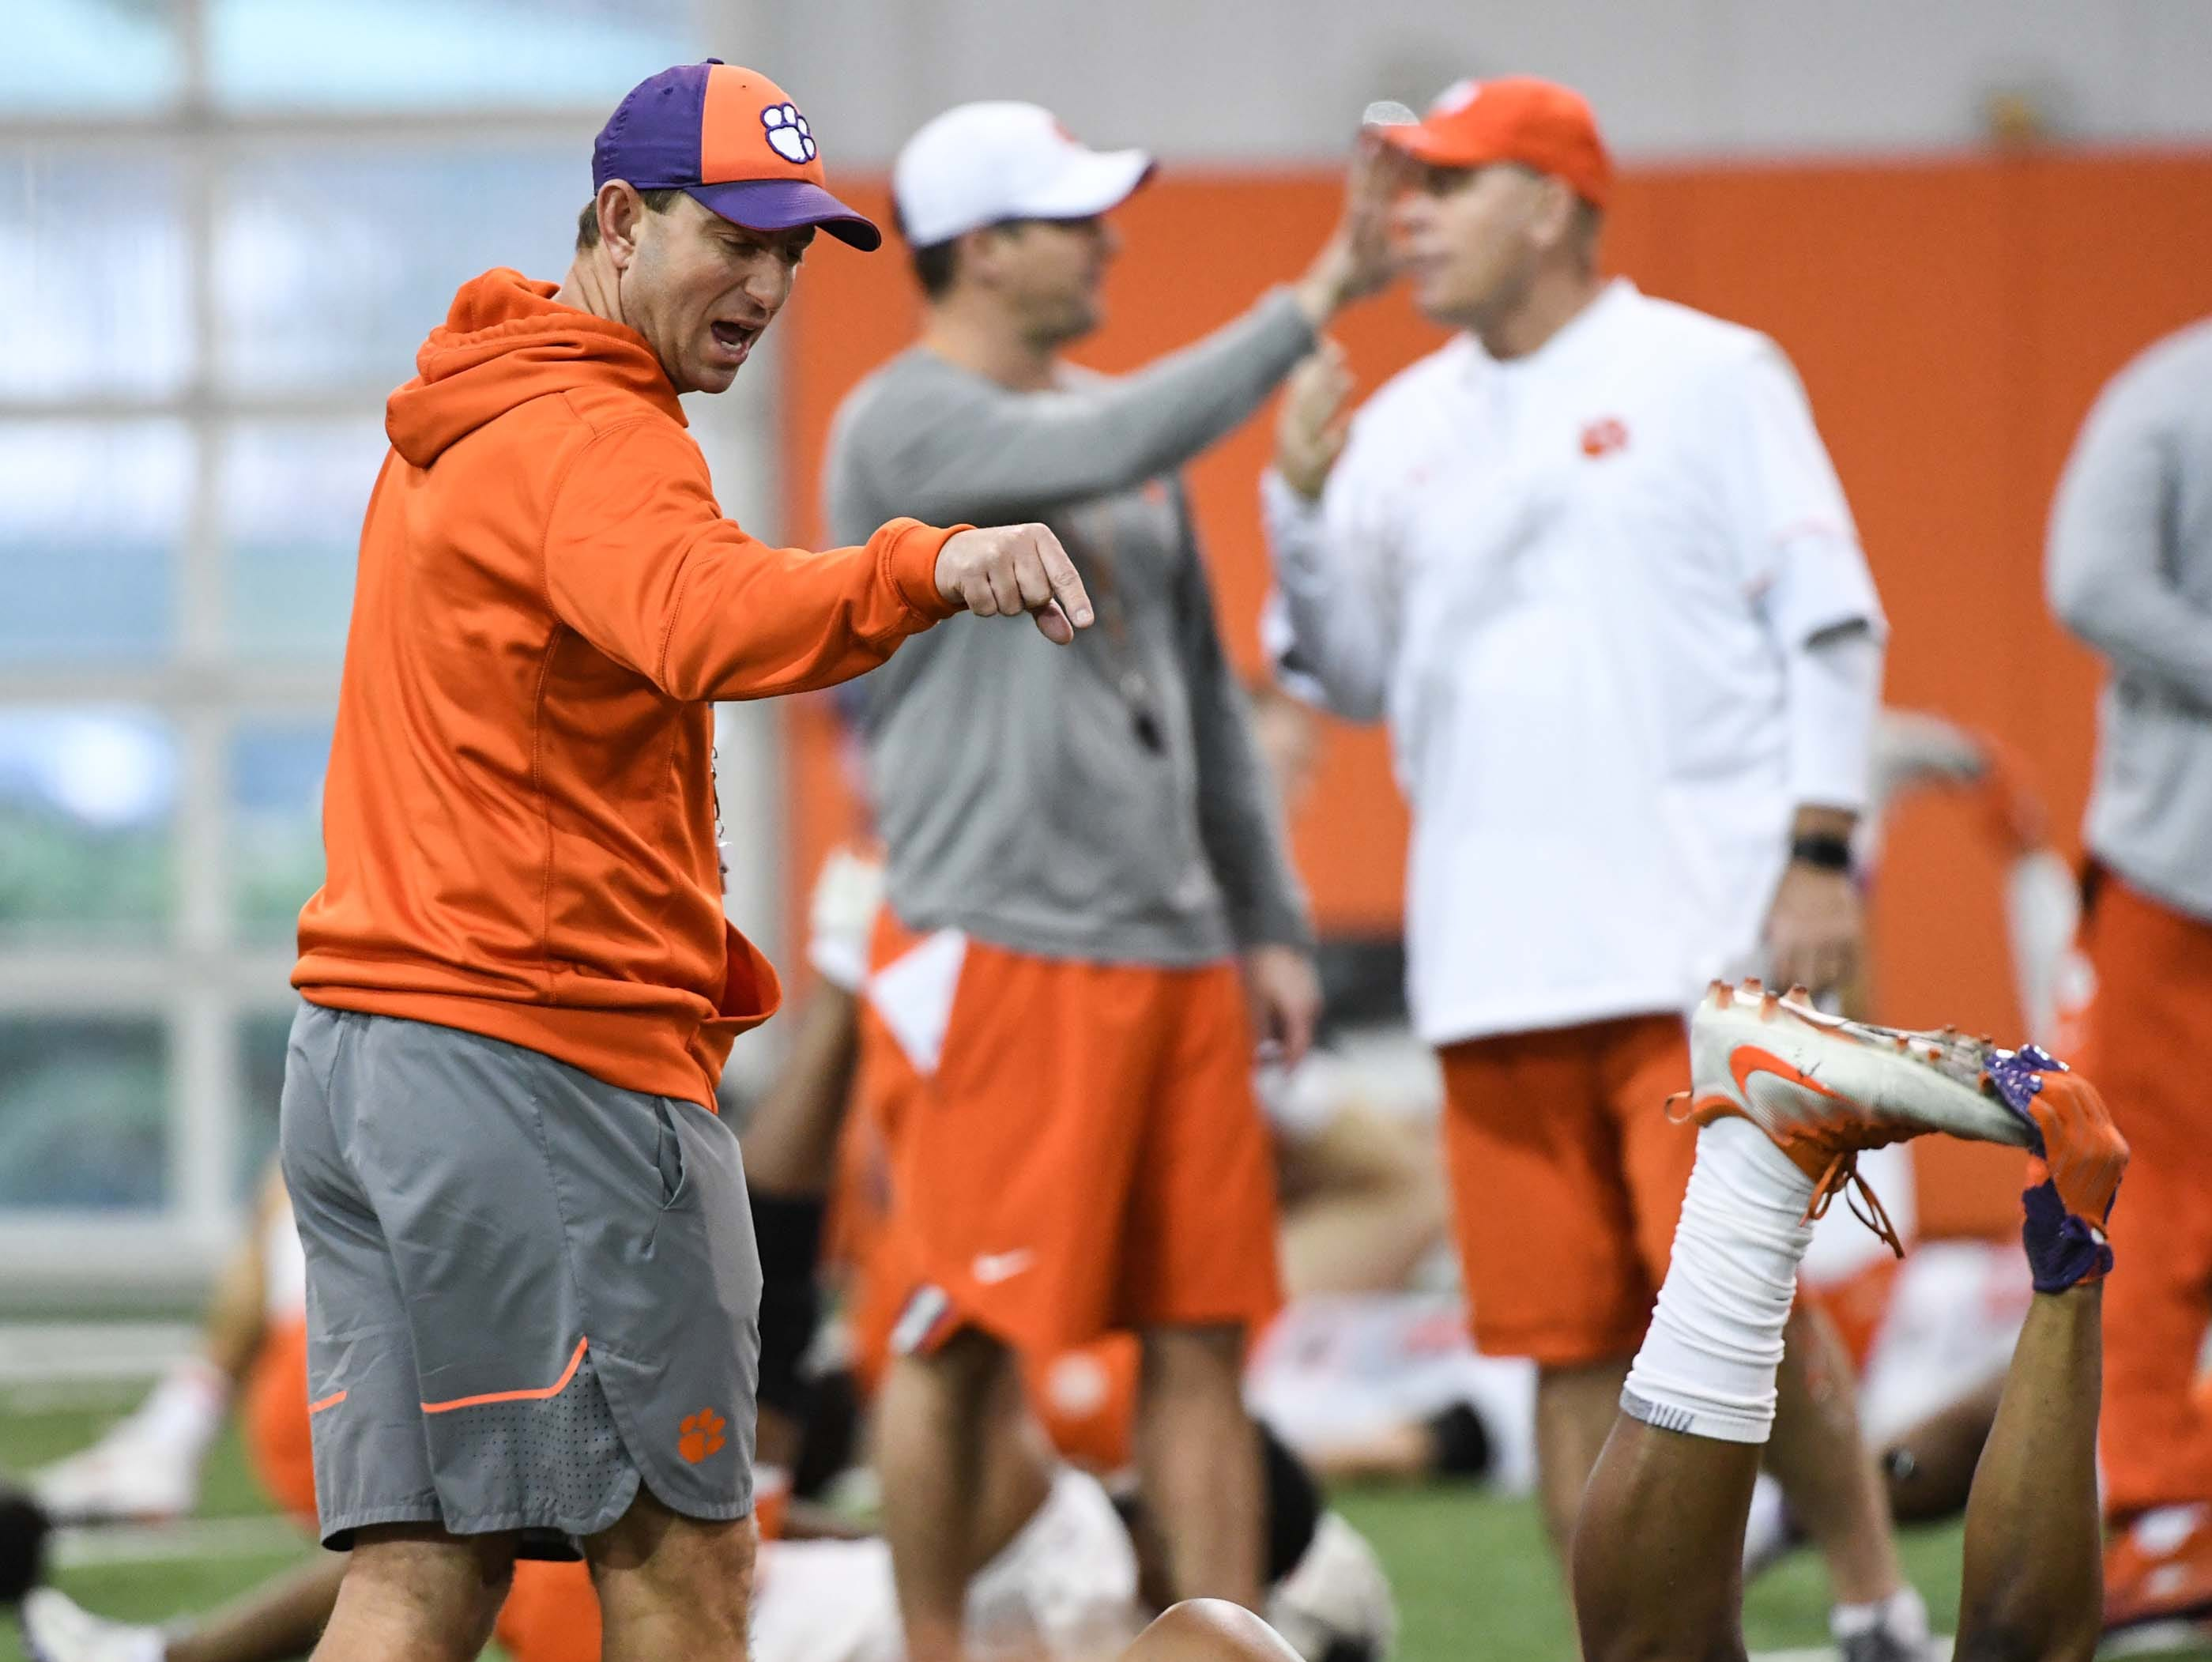 Clemson Head Coach Dabo Swinney talks with players during practice at the Poe Indoor Facility in Clemson Friday.